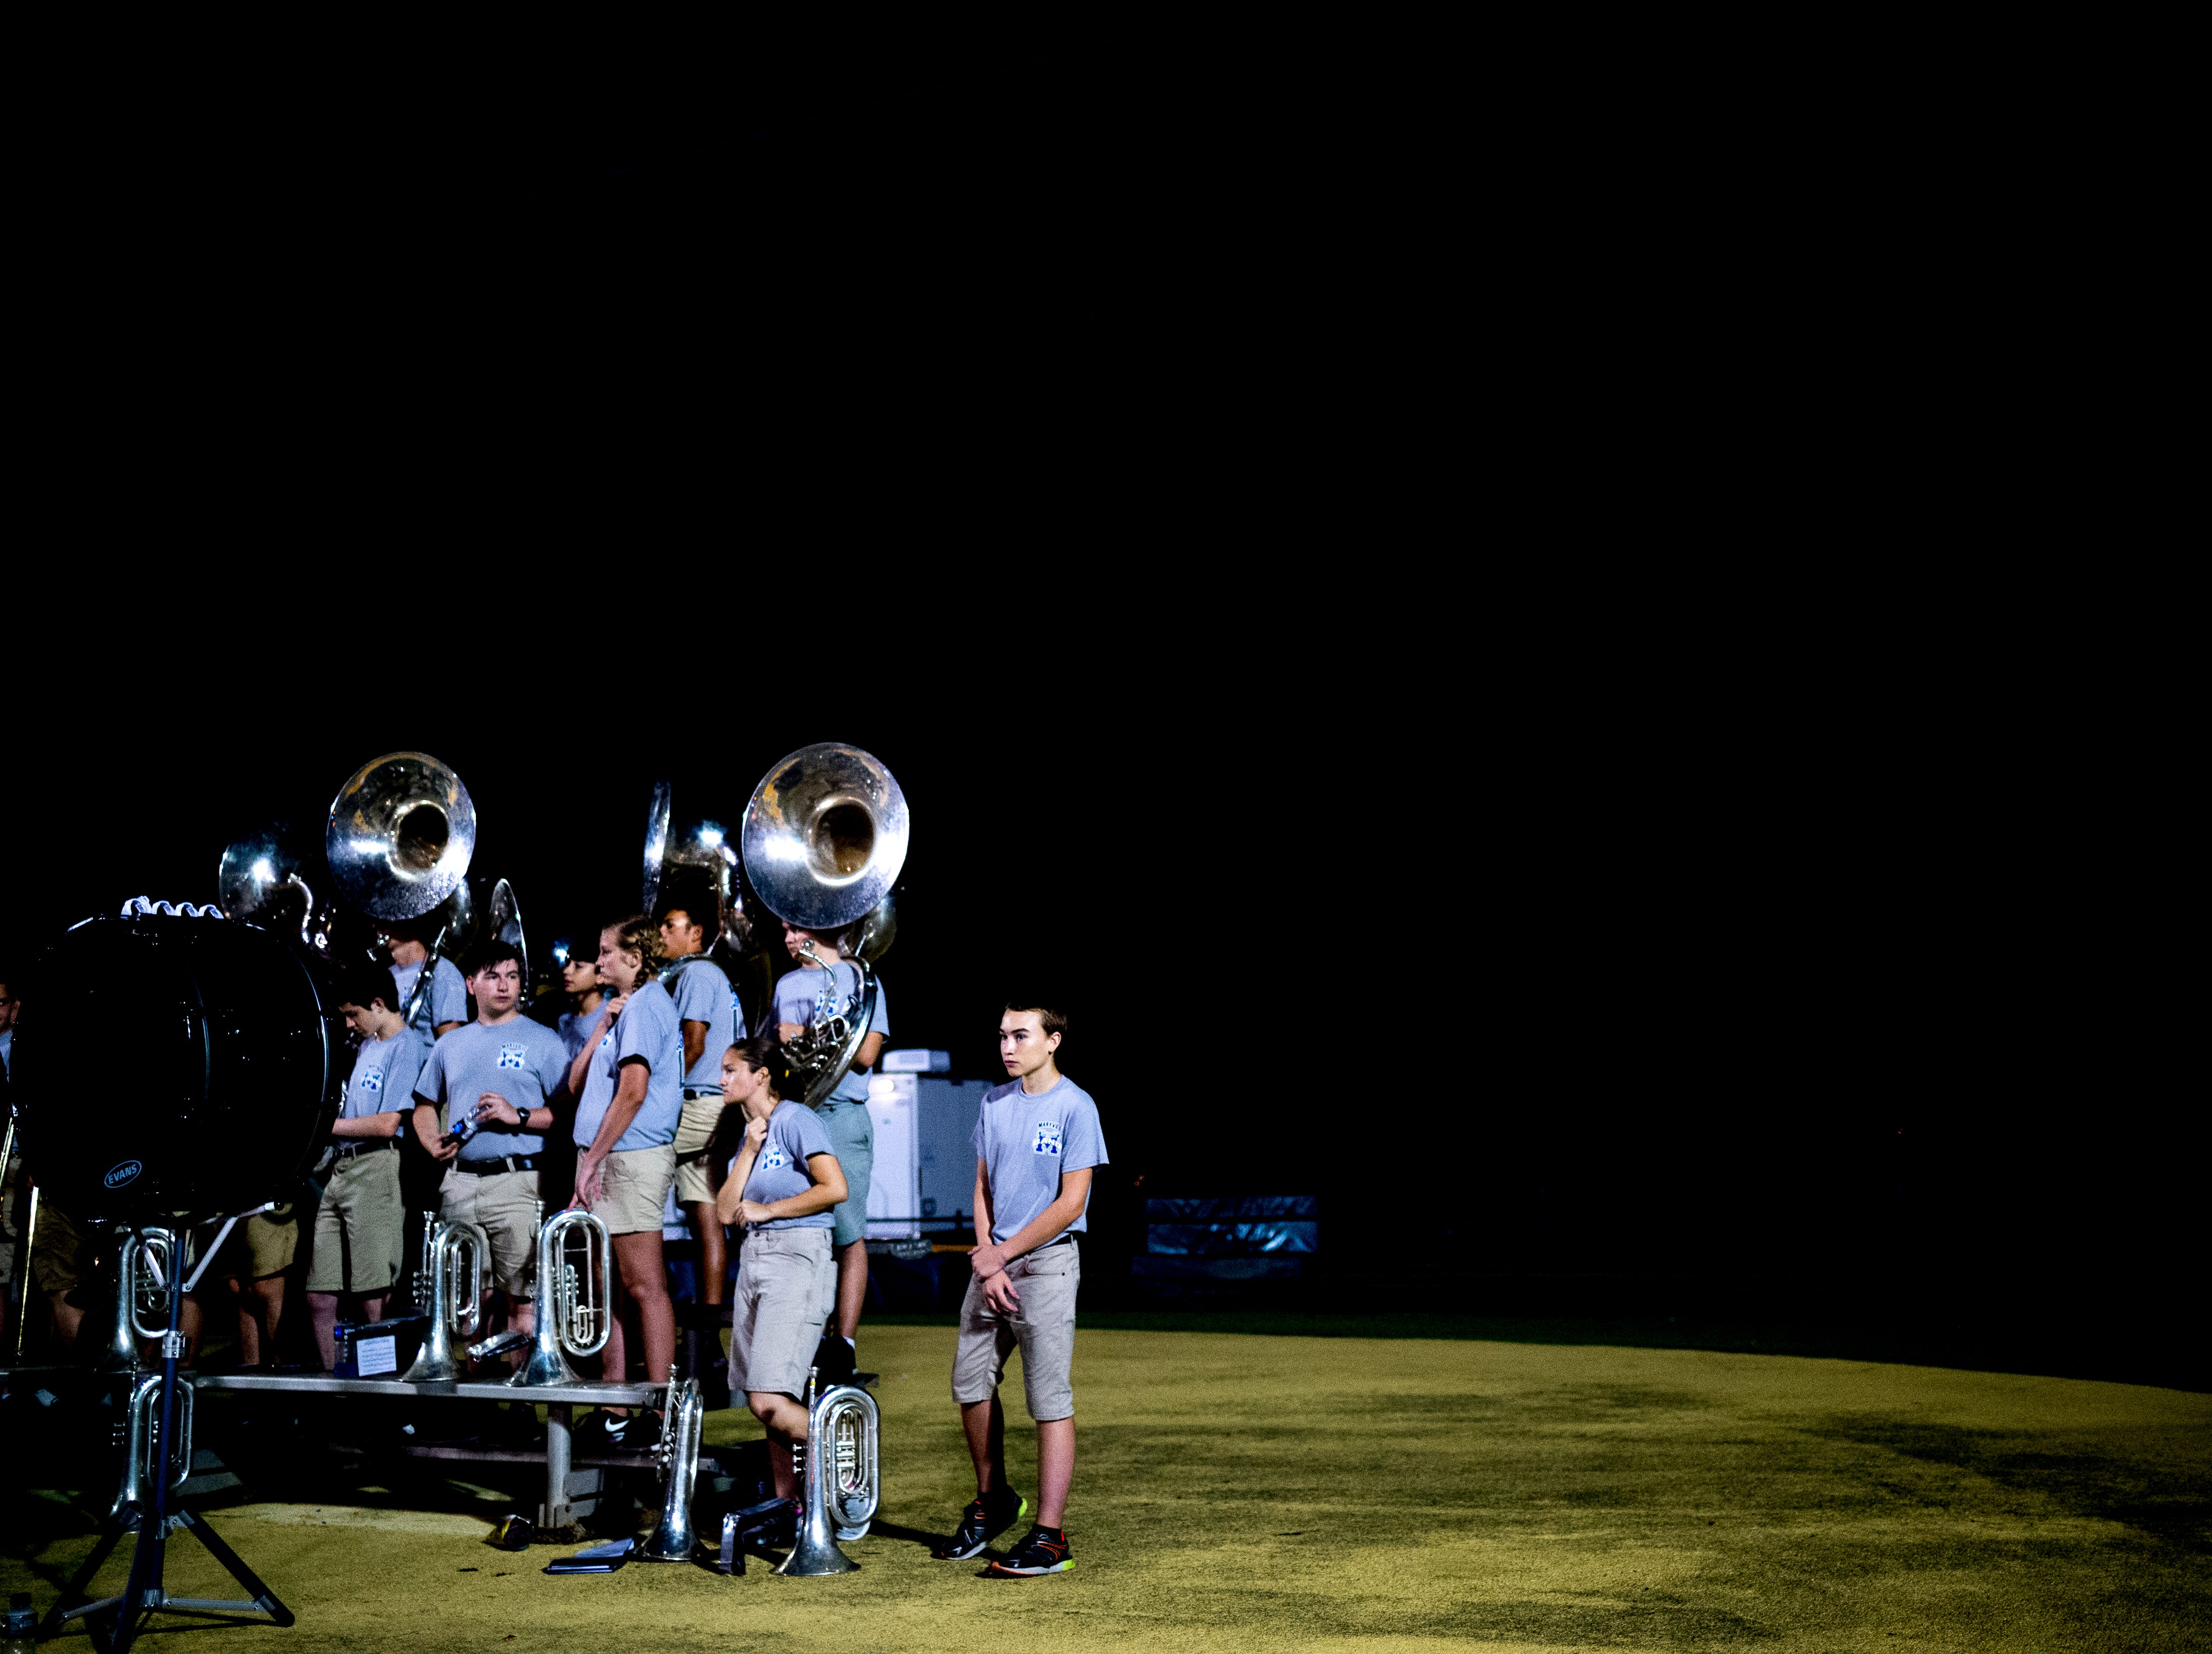 The Catholic band stands in the end zone during a football game between Maryville and Catholic at Catholic High School in Knoxville, Tennessee on Friday, August 17, 2018.